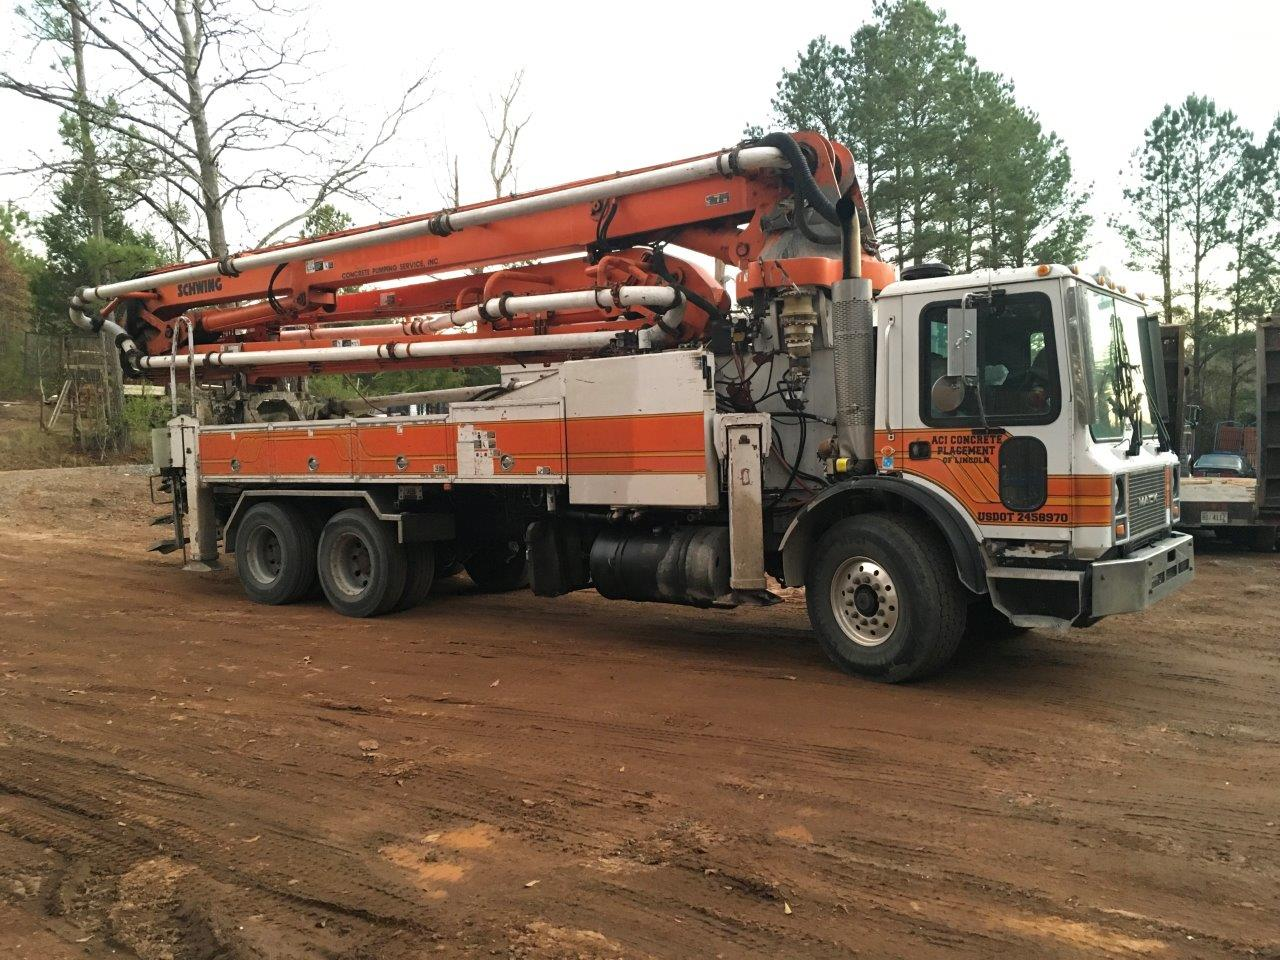 Alabama Concrete Pumping